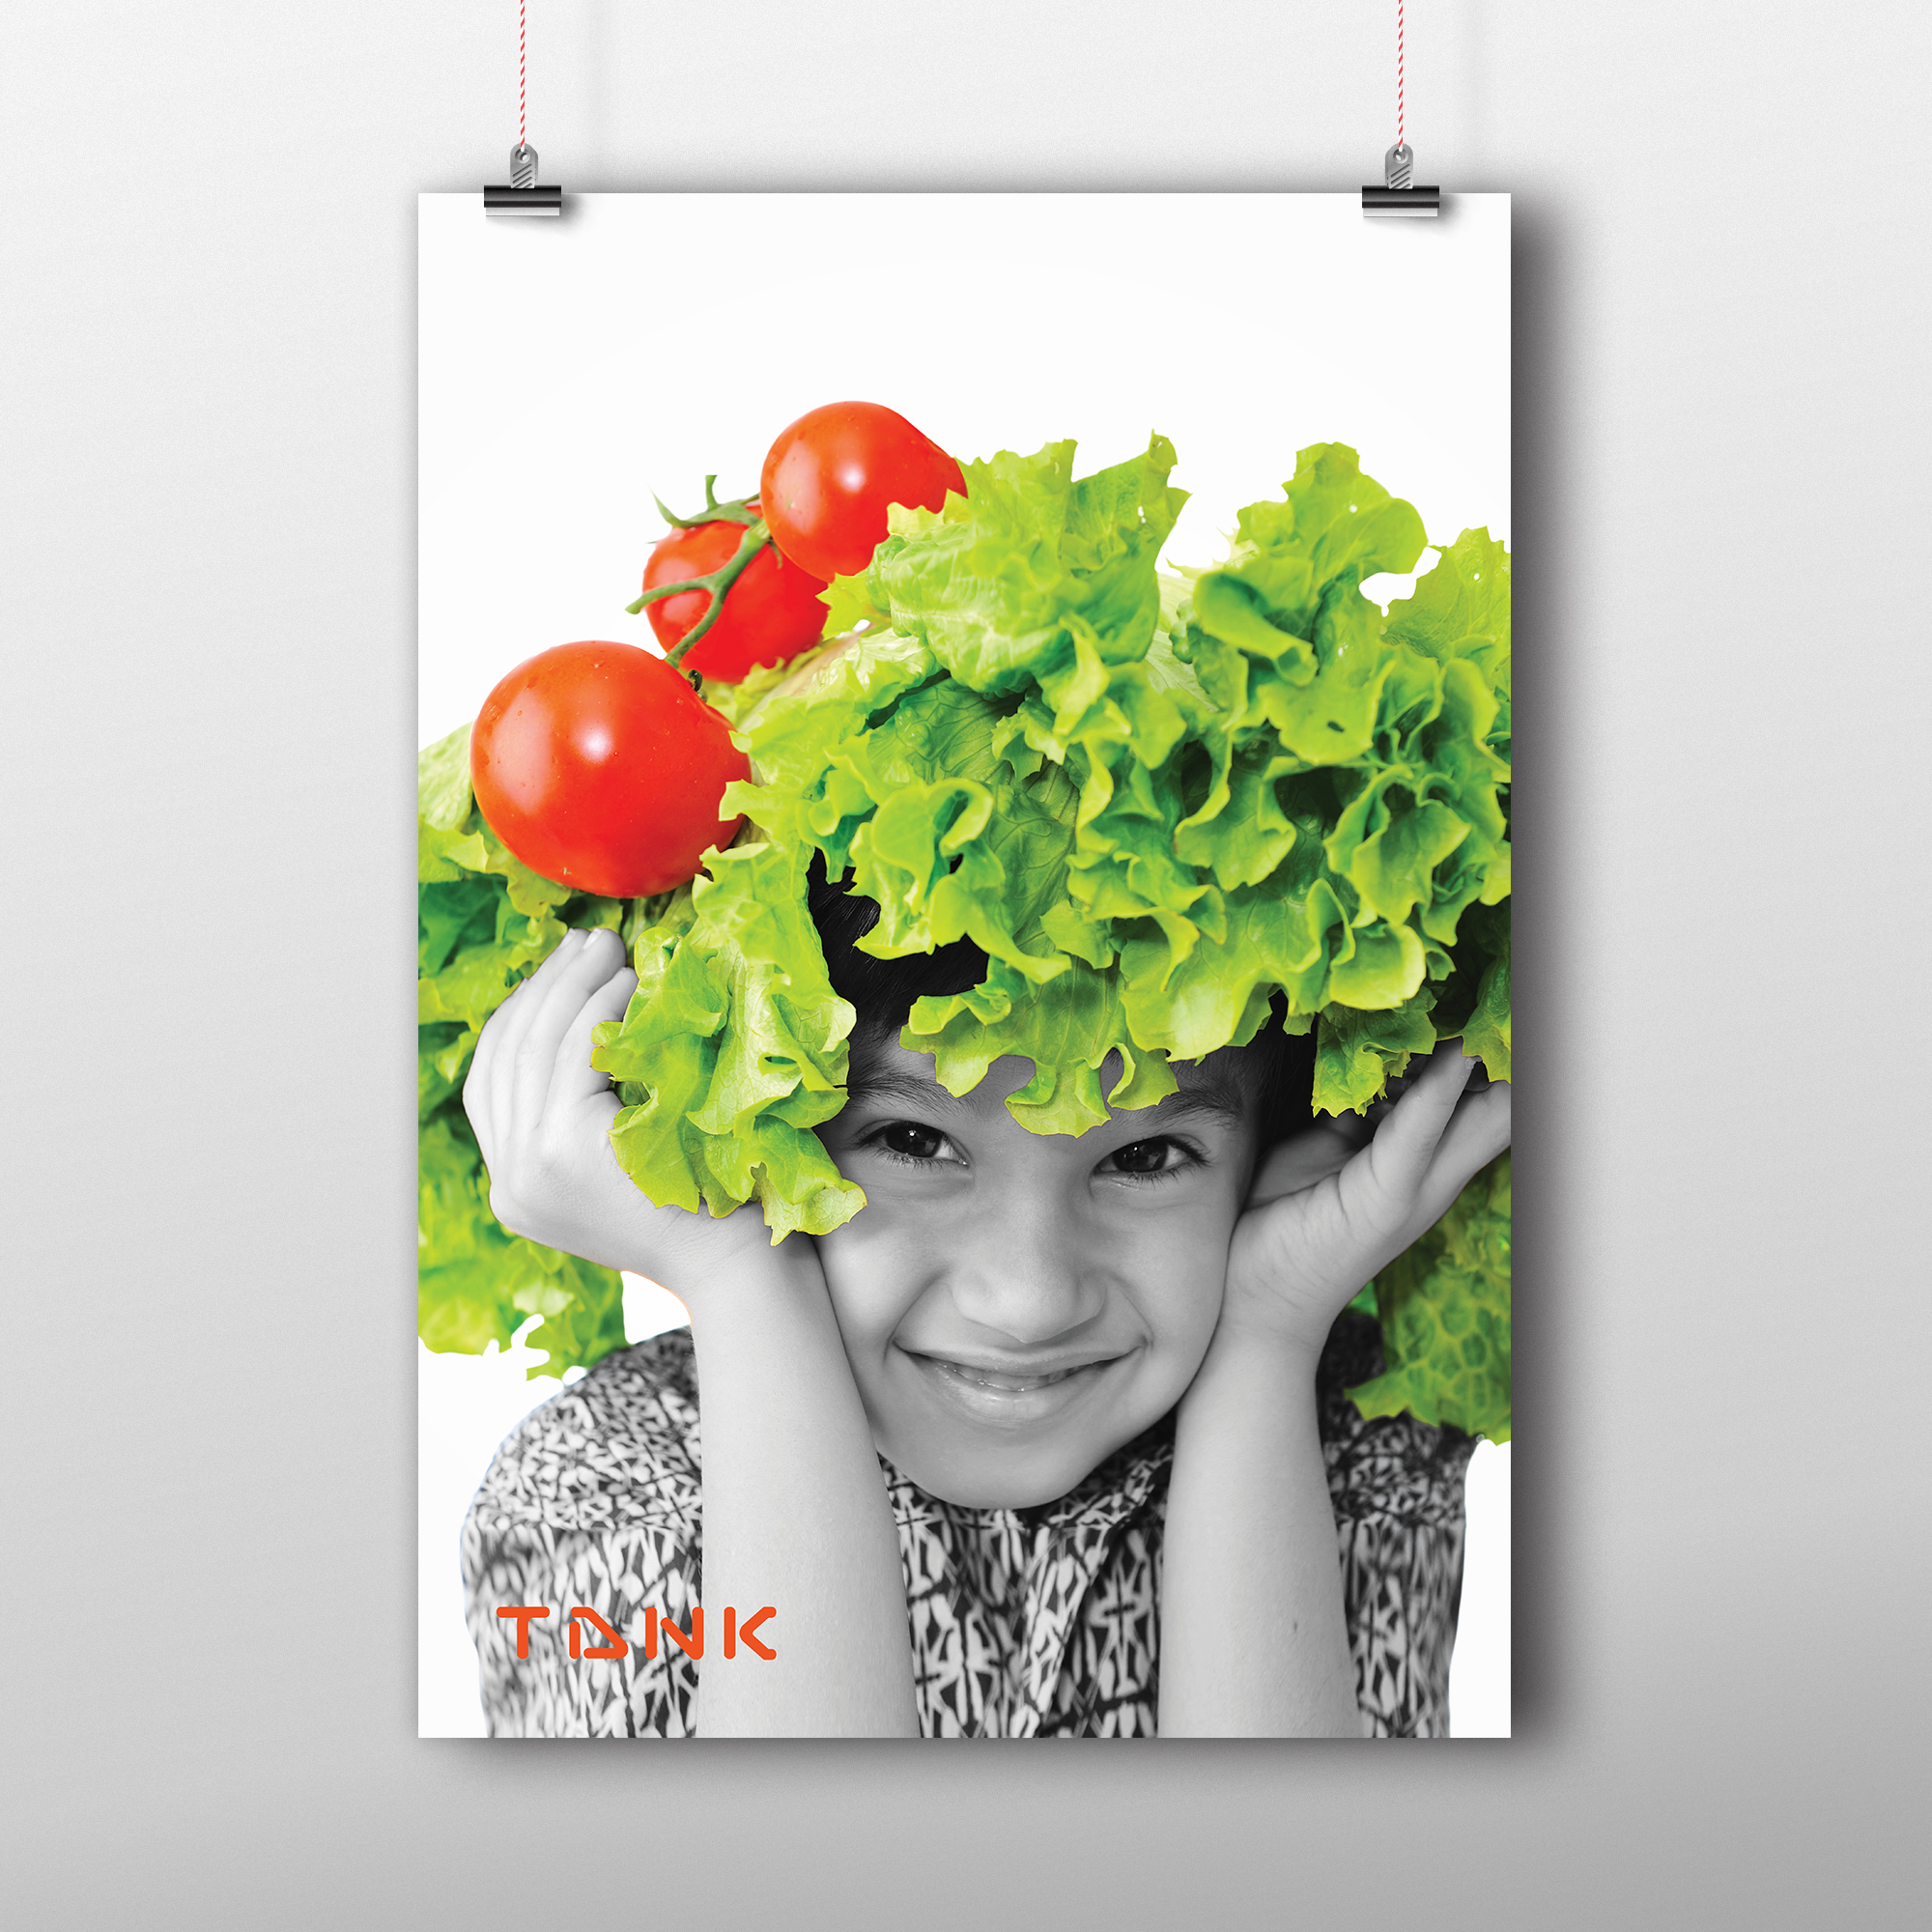 Instore posters and wall graphics:  design, retouching